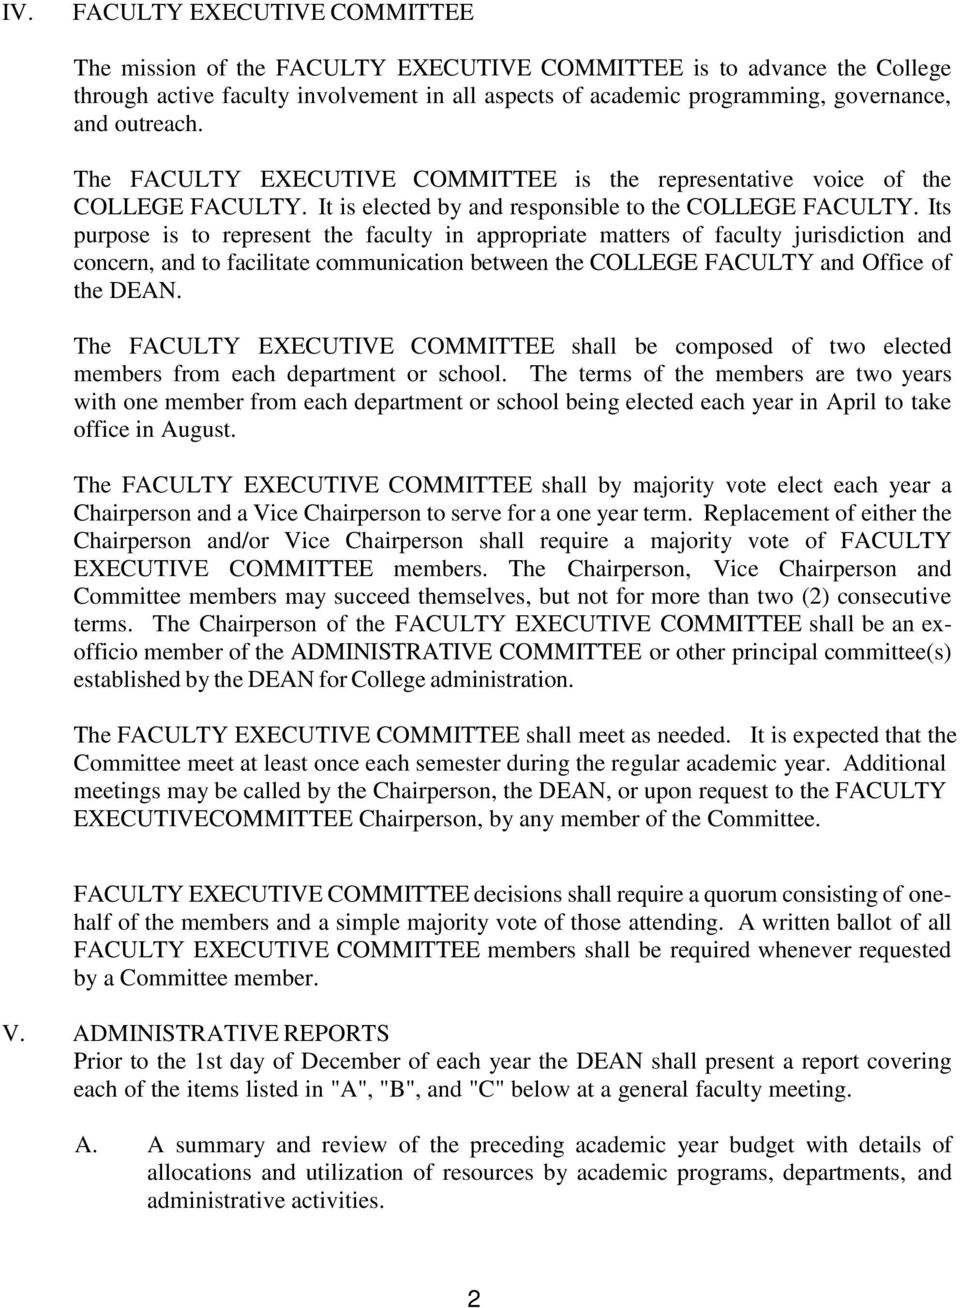 Its purpose is to represent the faculty in appropriate matters of faculty jurisdiction and concern, and to facilitate communication between the COLLEGE FACULTY and Office of the DEAN.